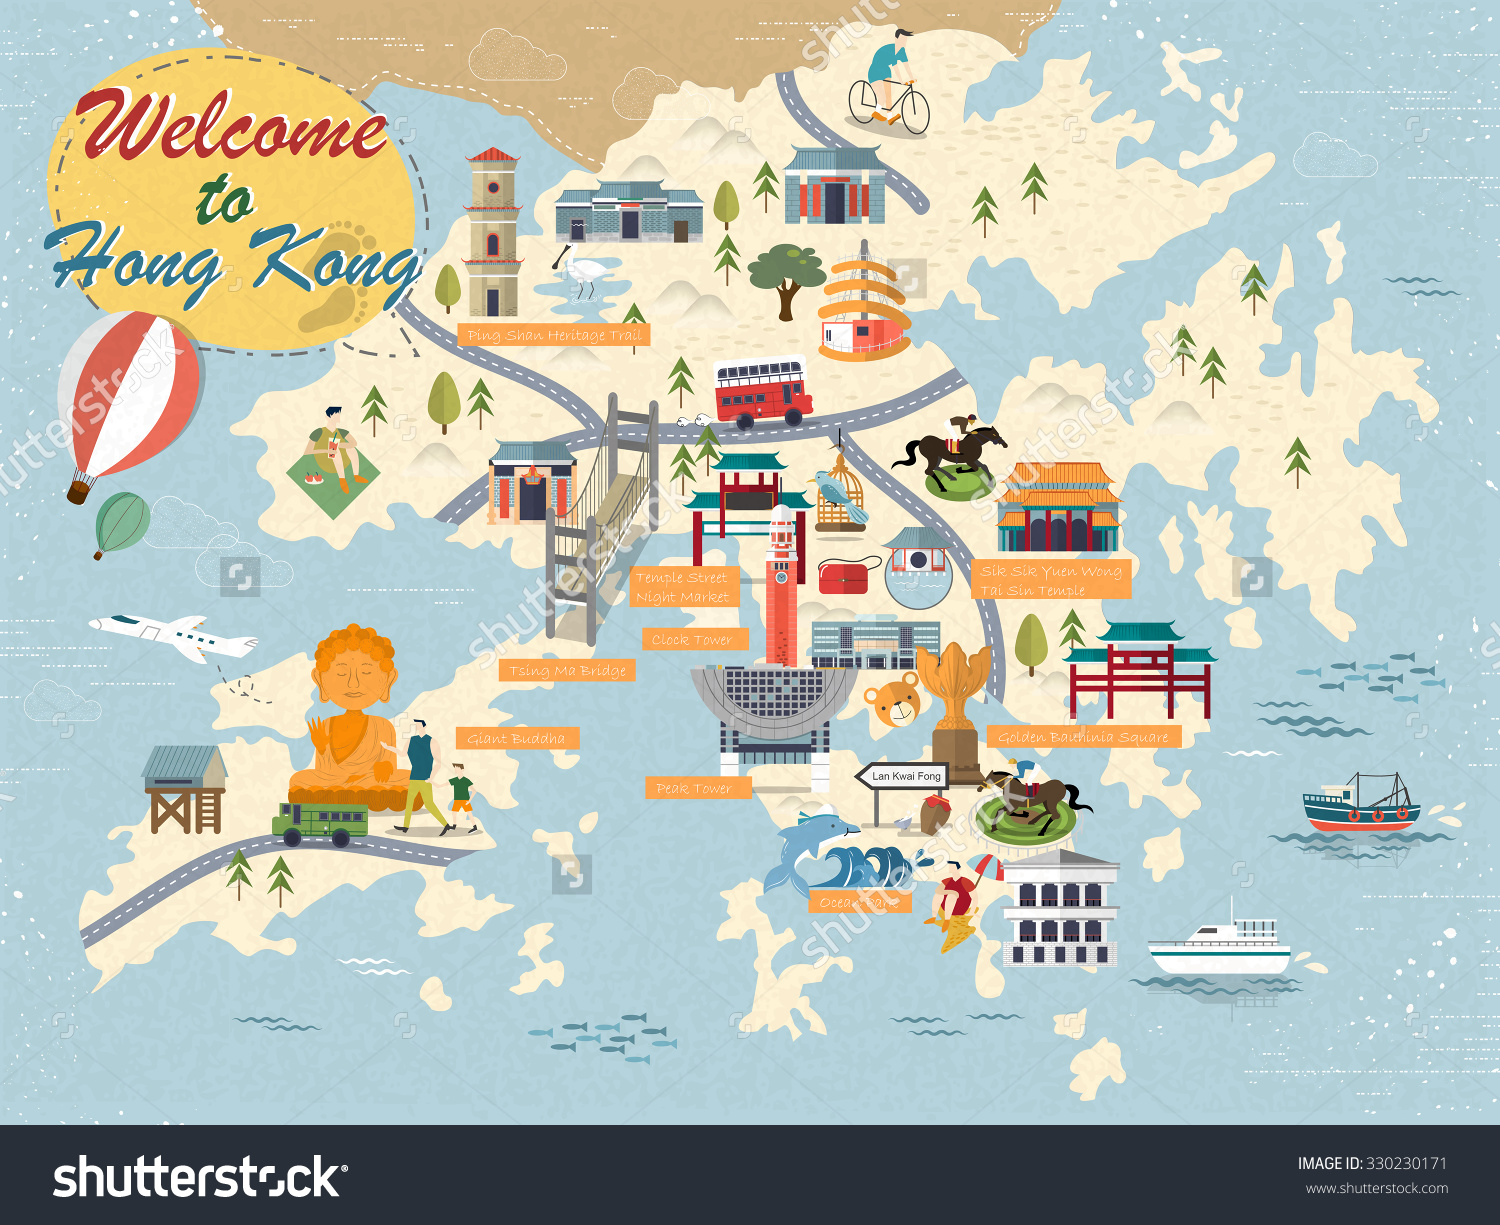 Attractive Hong Kong Travel Map Attractions Illustration – Hong Kong Map For Tourist